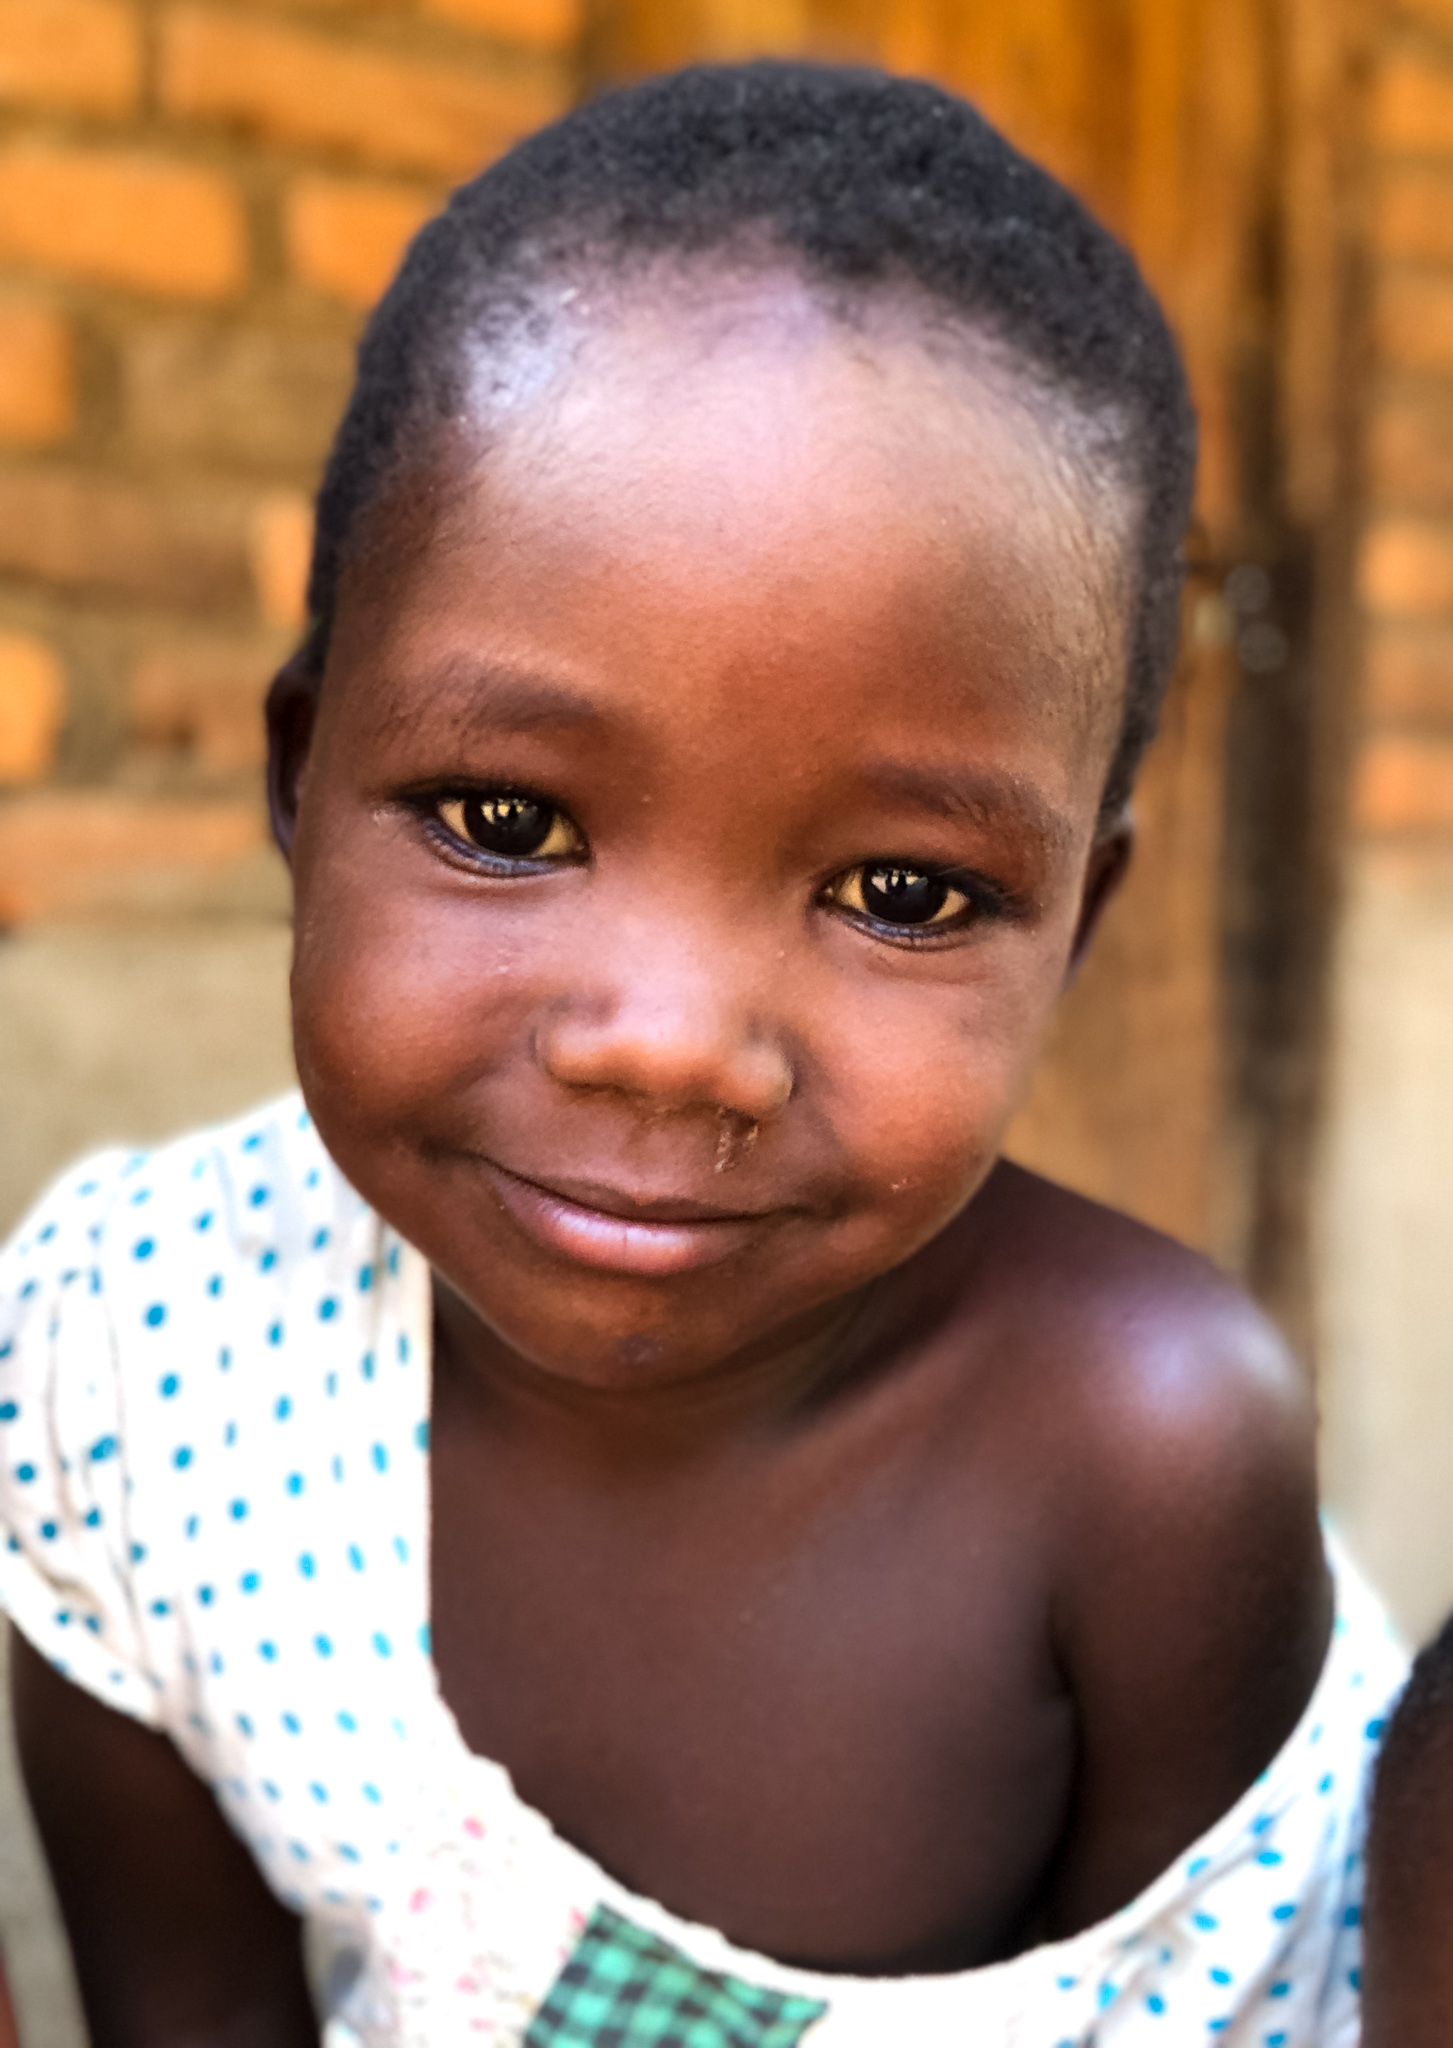 local_girl_in_malawi_village.jpg